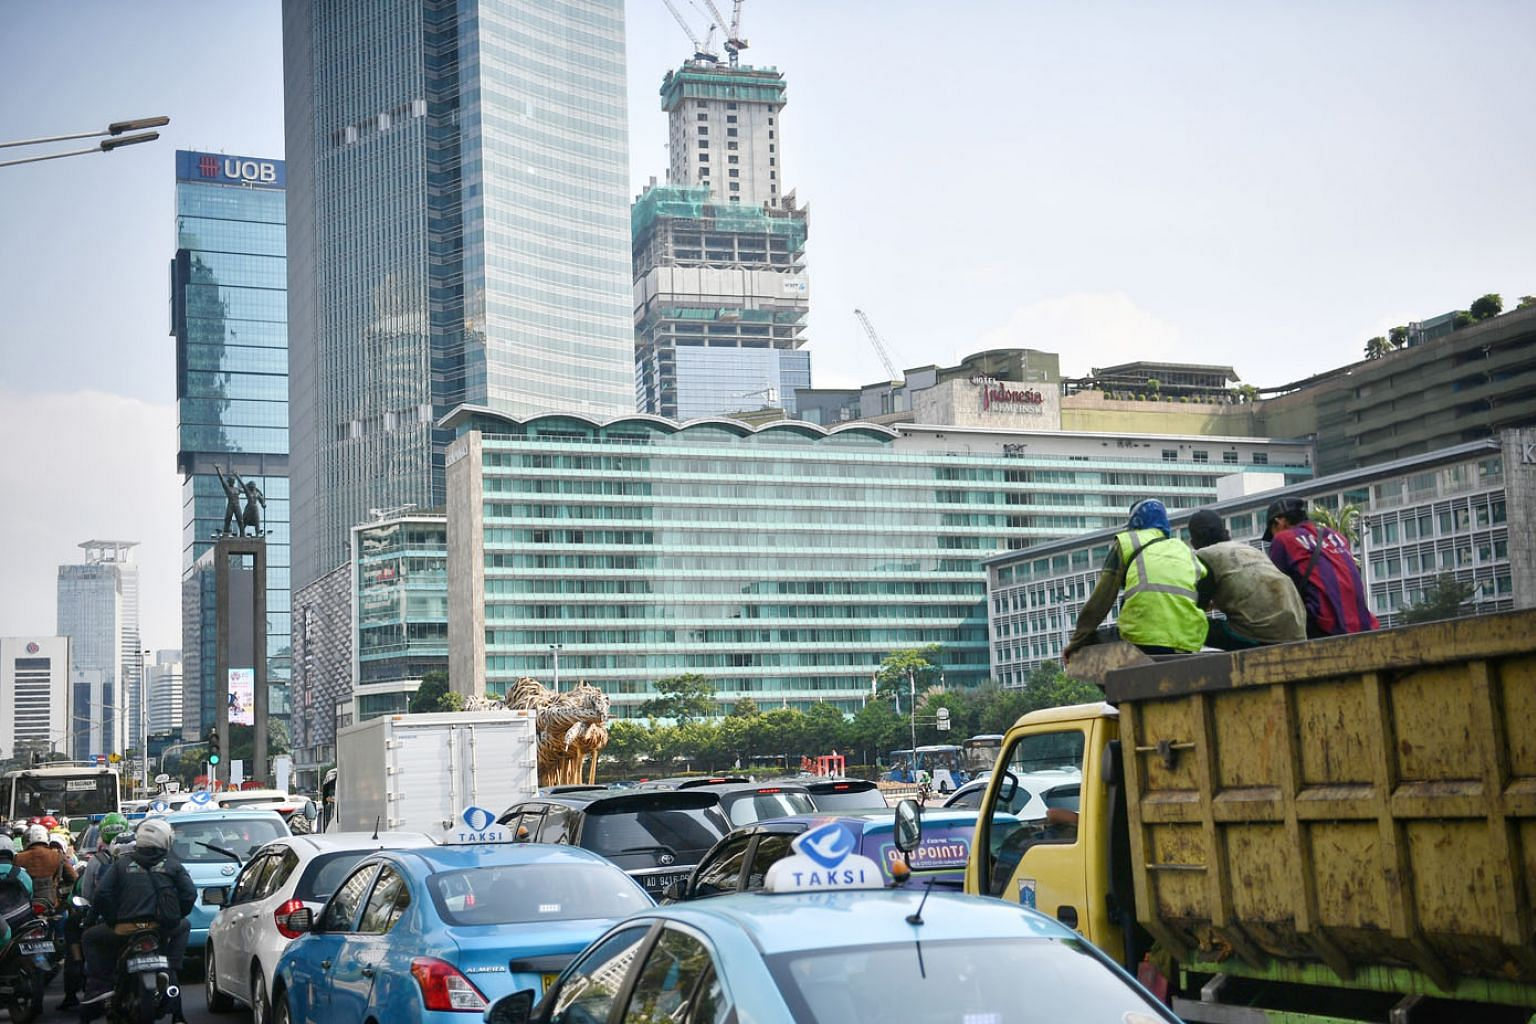 Jakarta, a sprawling metropolis of more than 10 million people, has suffered from traffic congestion, overcrowding, pollution and regular flooding for decades. President Joko Widodo said keeping Jakarta as Indonesia's capital may not be sustainable i